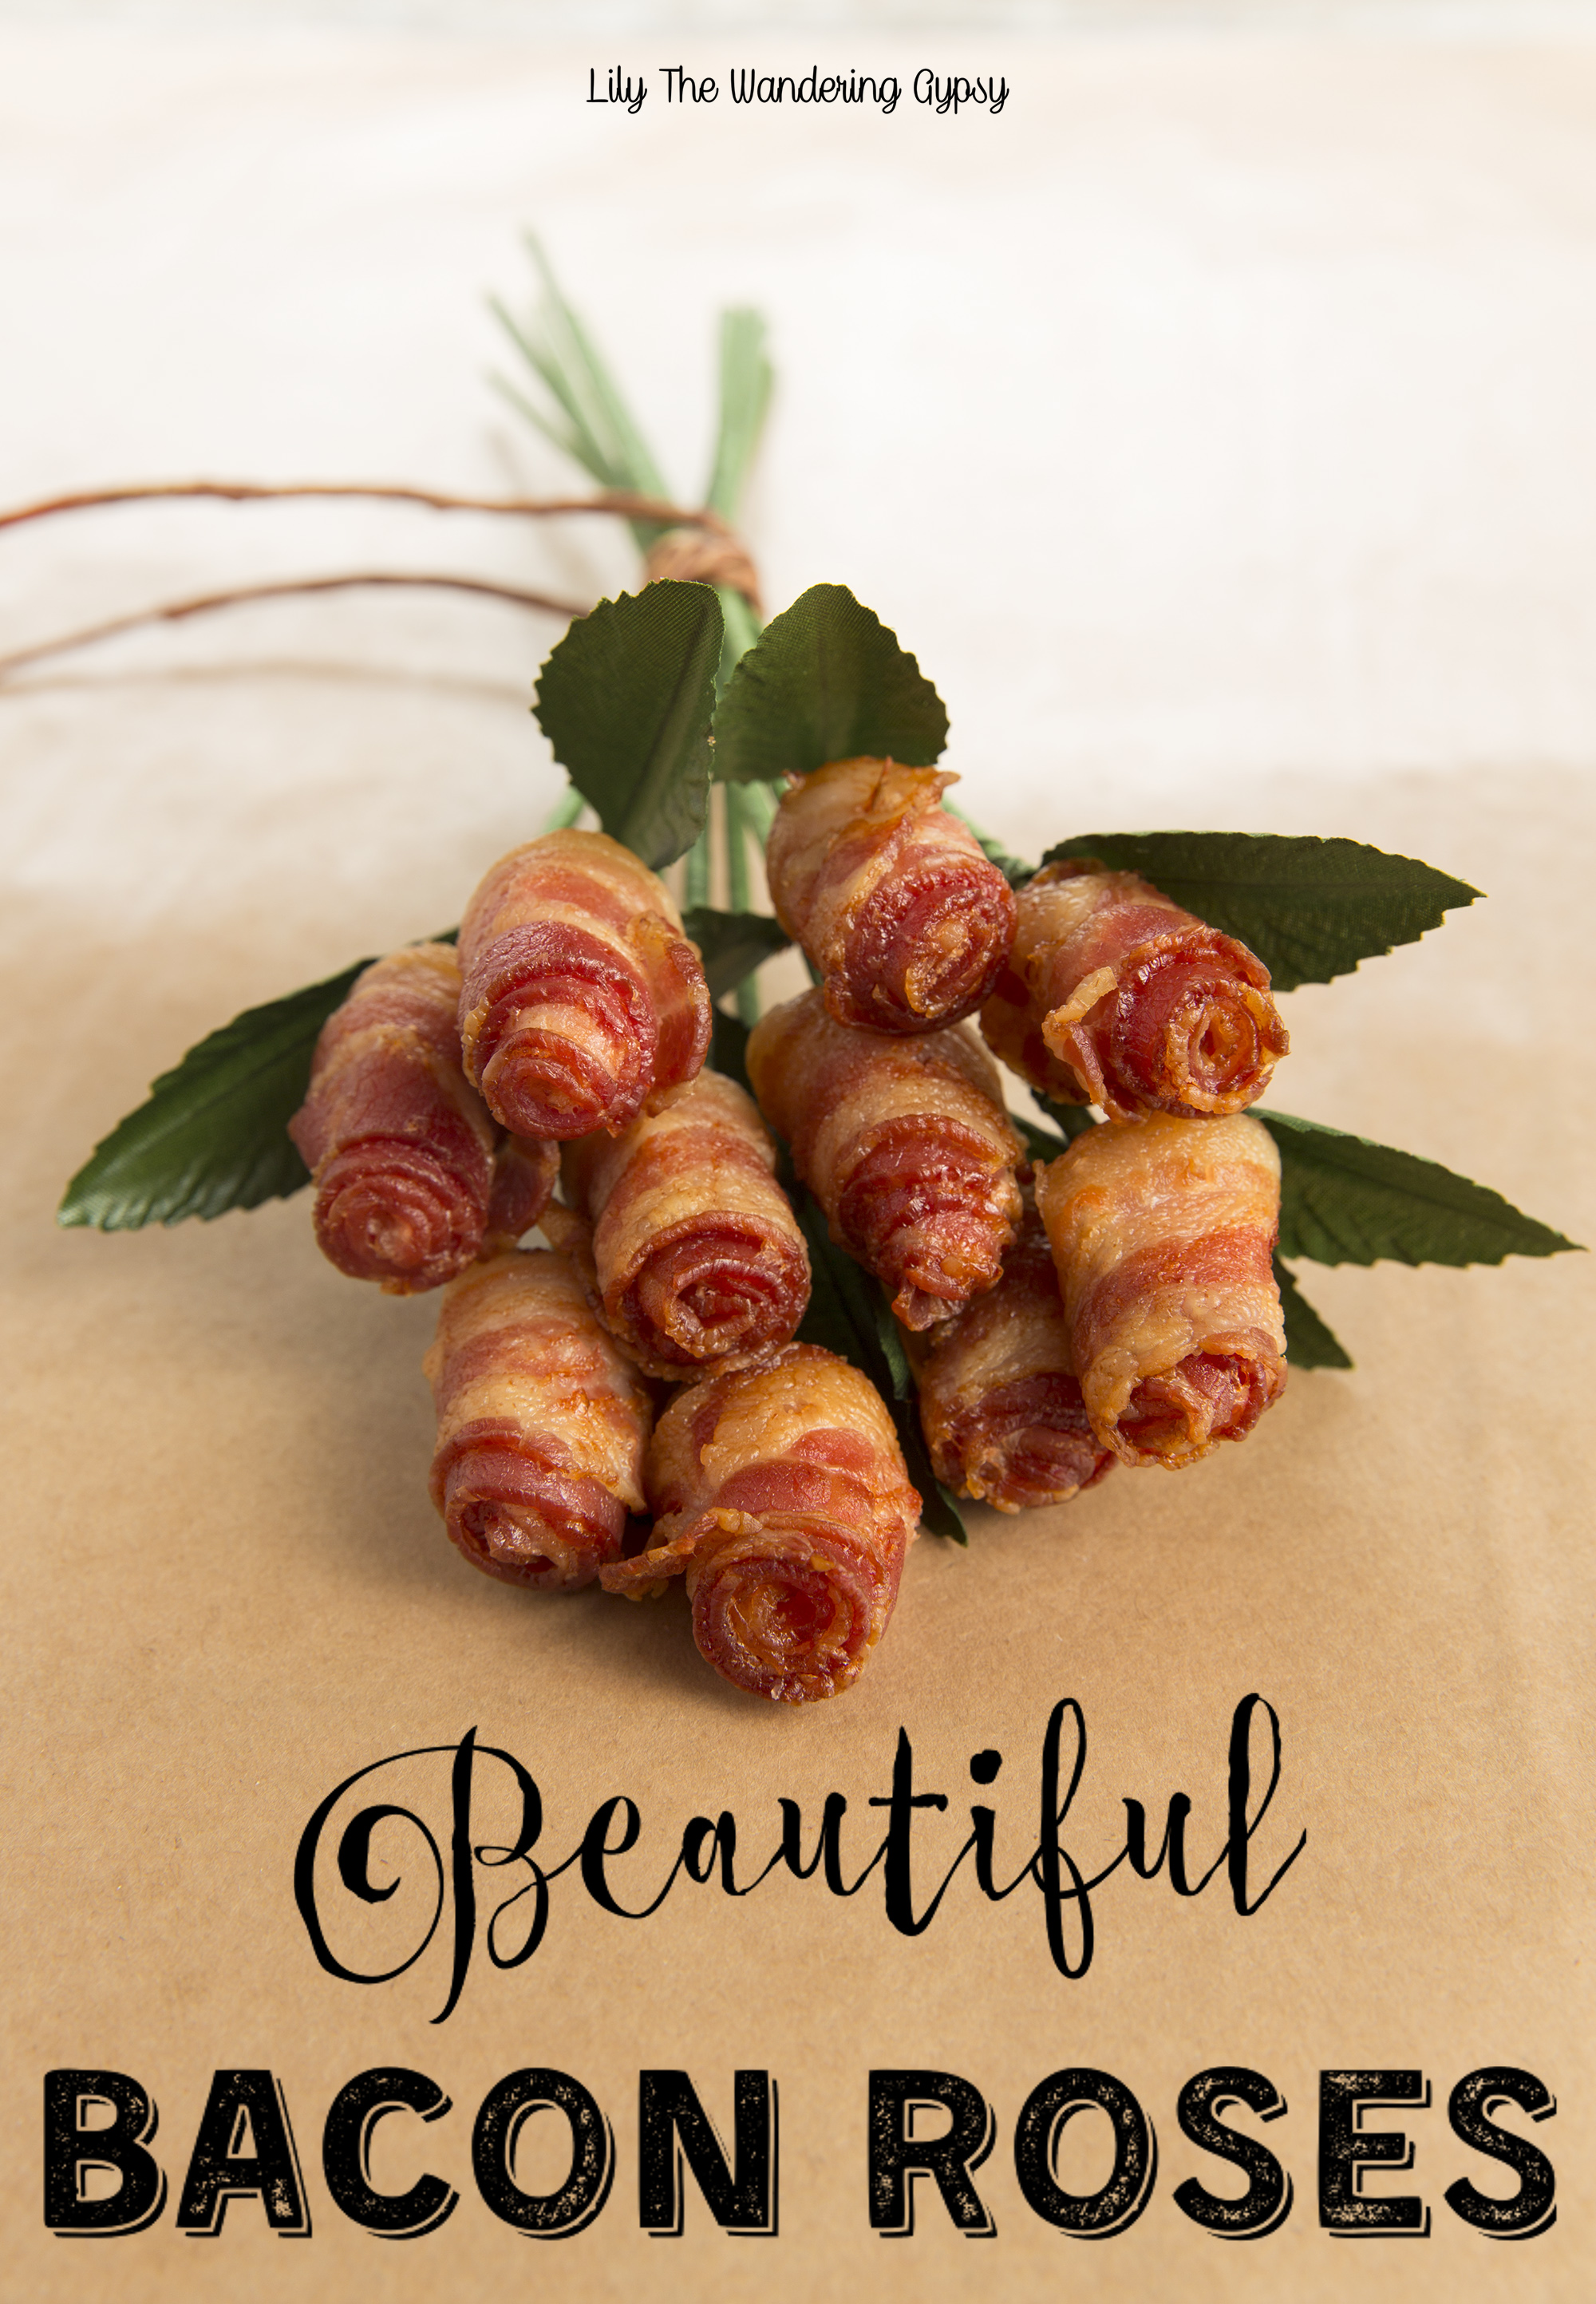 Bacon Roses by Lily The Wandering Gypsy